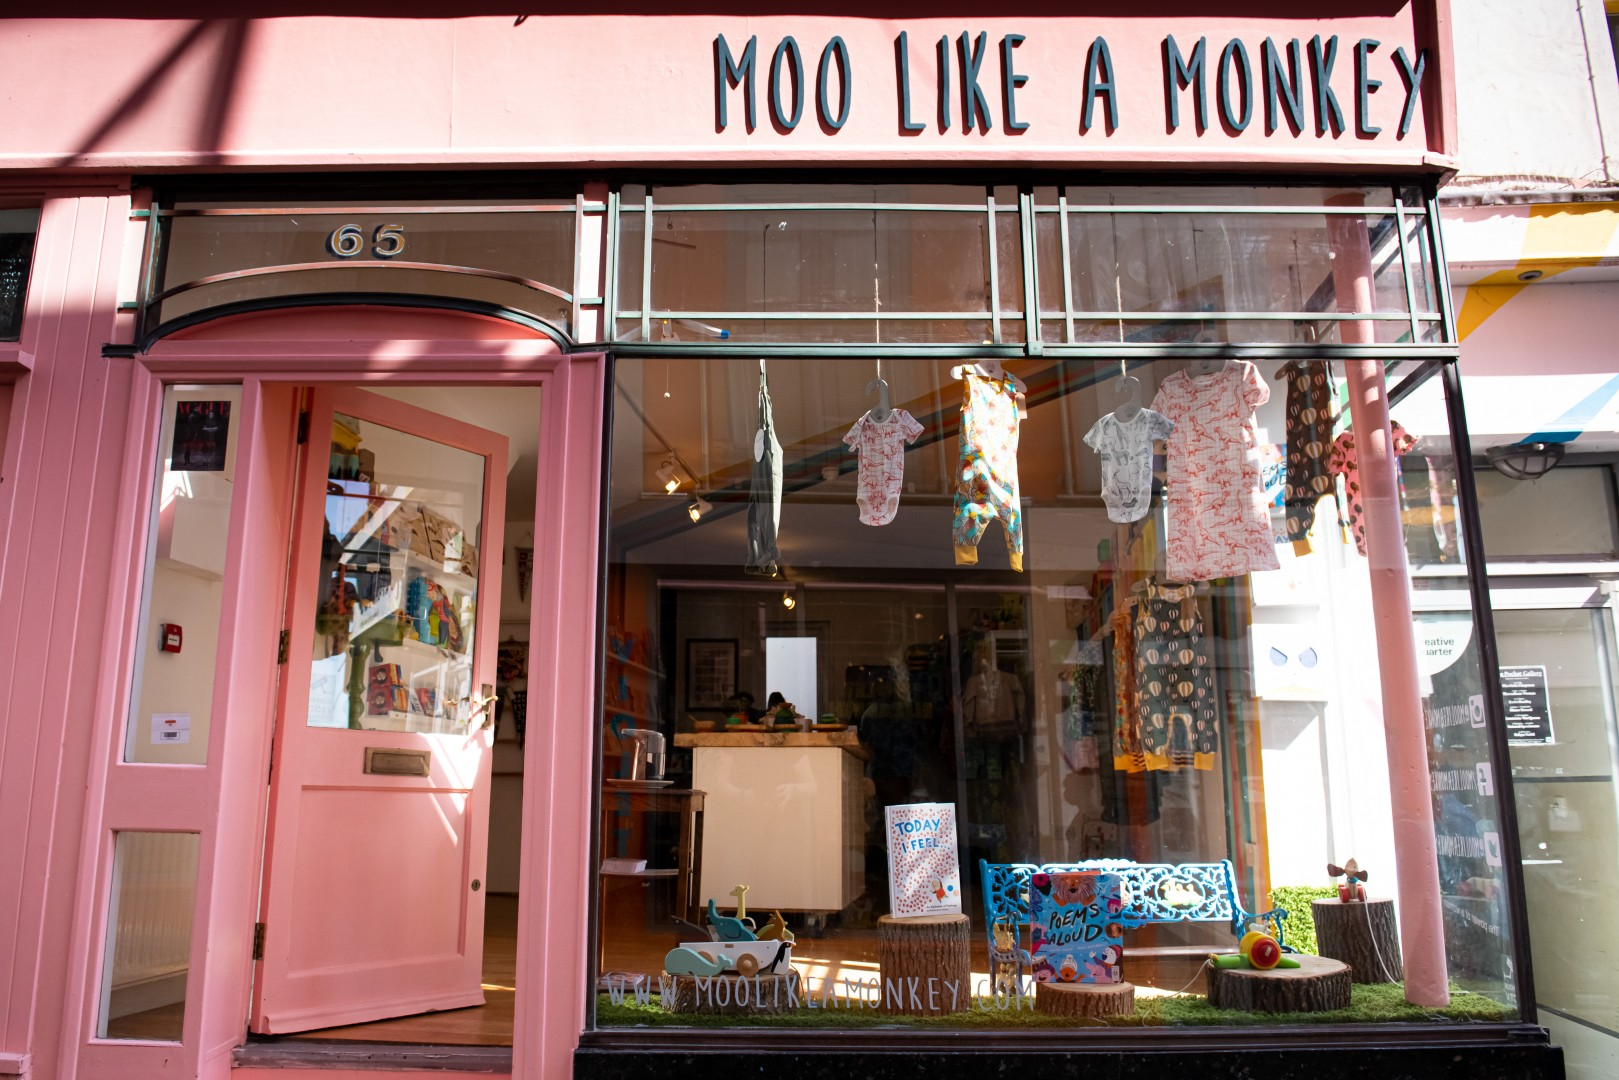 Moo Like a Monkey shop front and window display